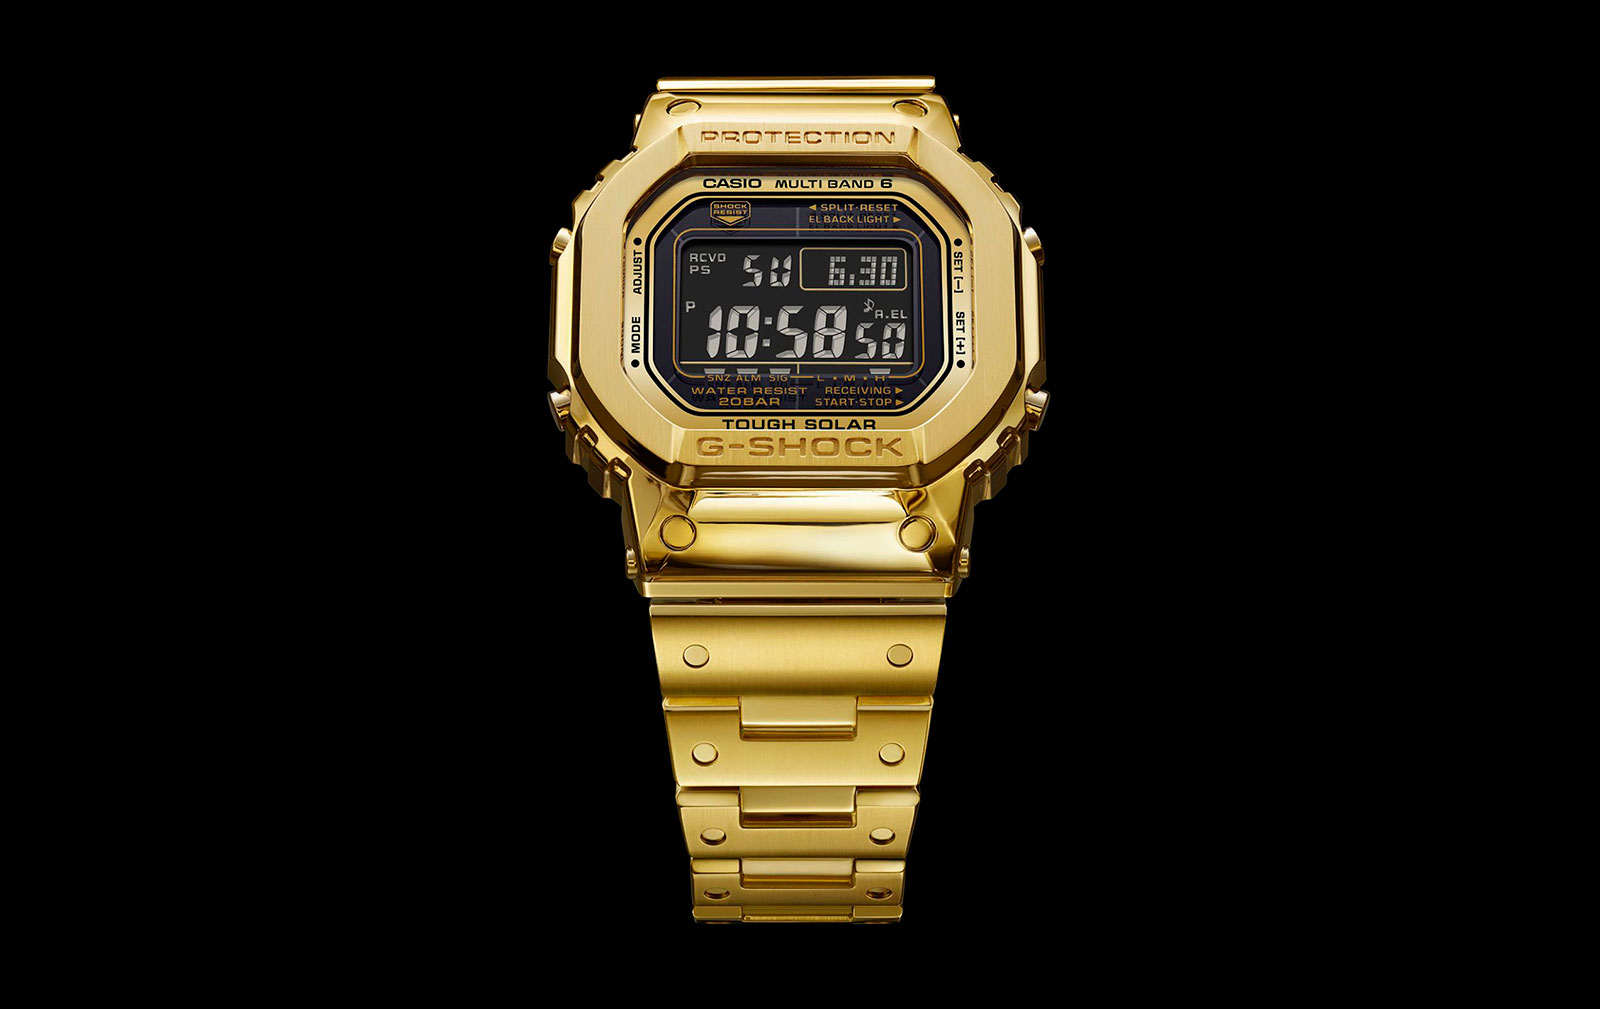 Introducing The 70 000 G Shock Limited Edition In 18k